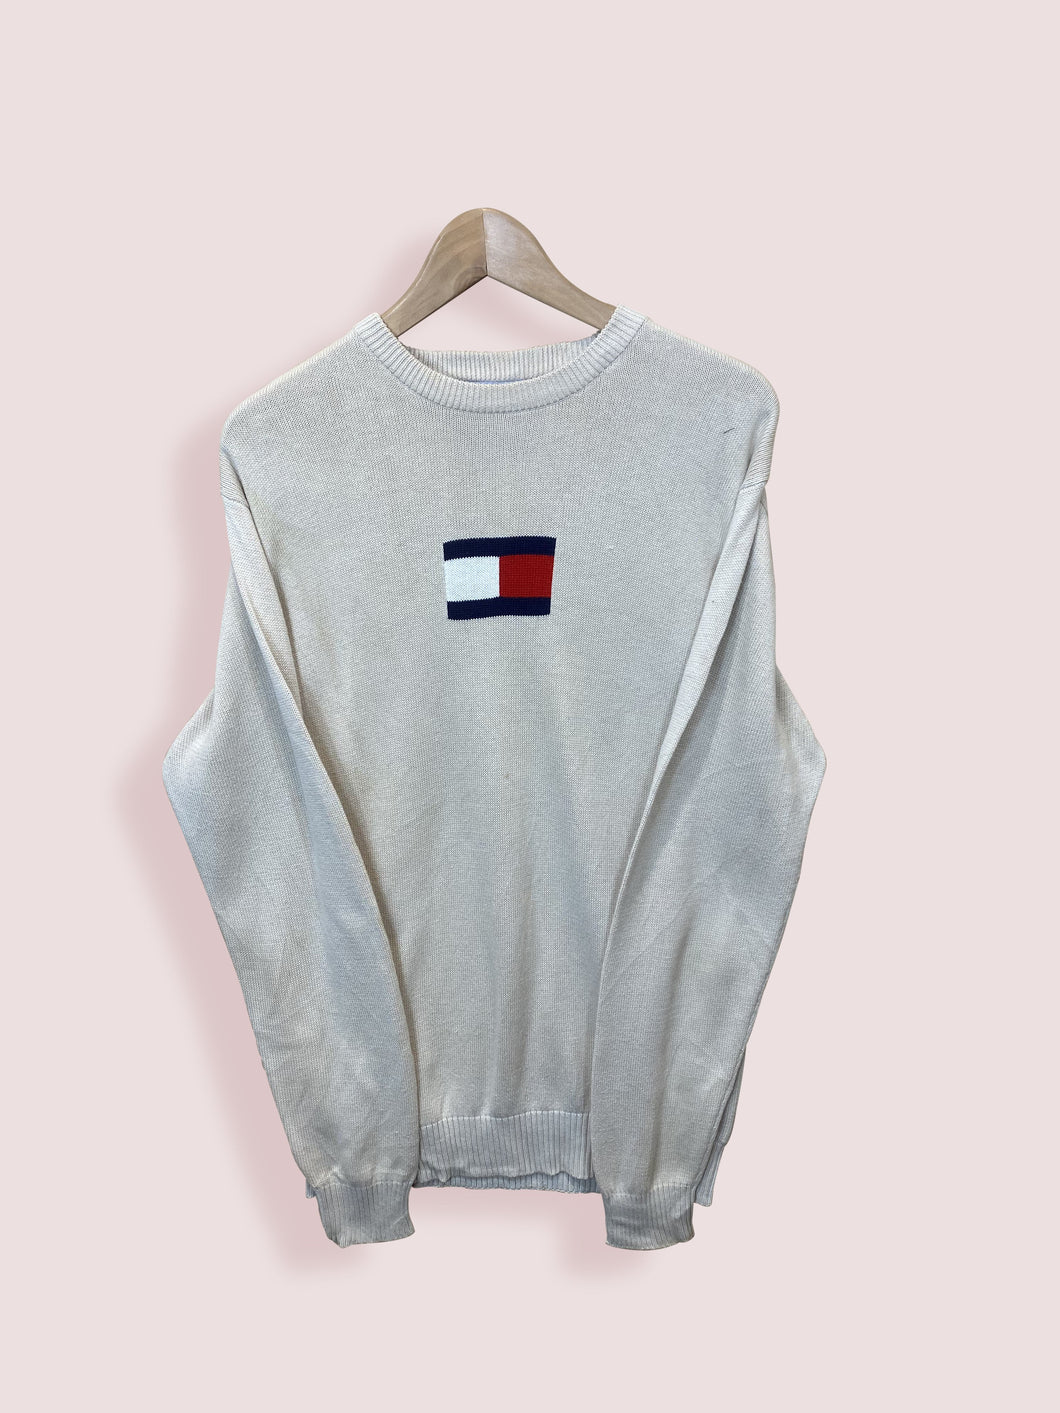 S Vintage Tommy Hilfiger Cream Knit Large Logo